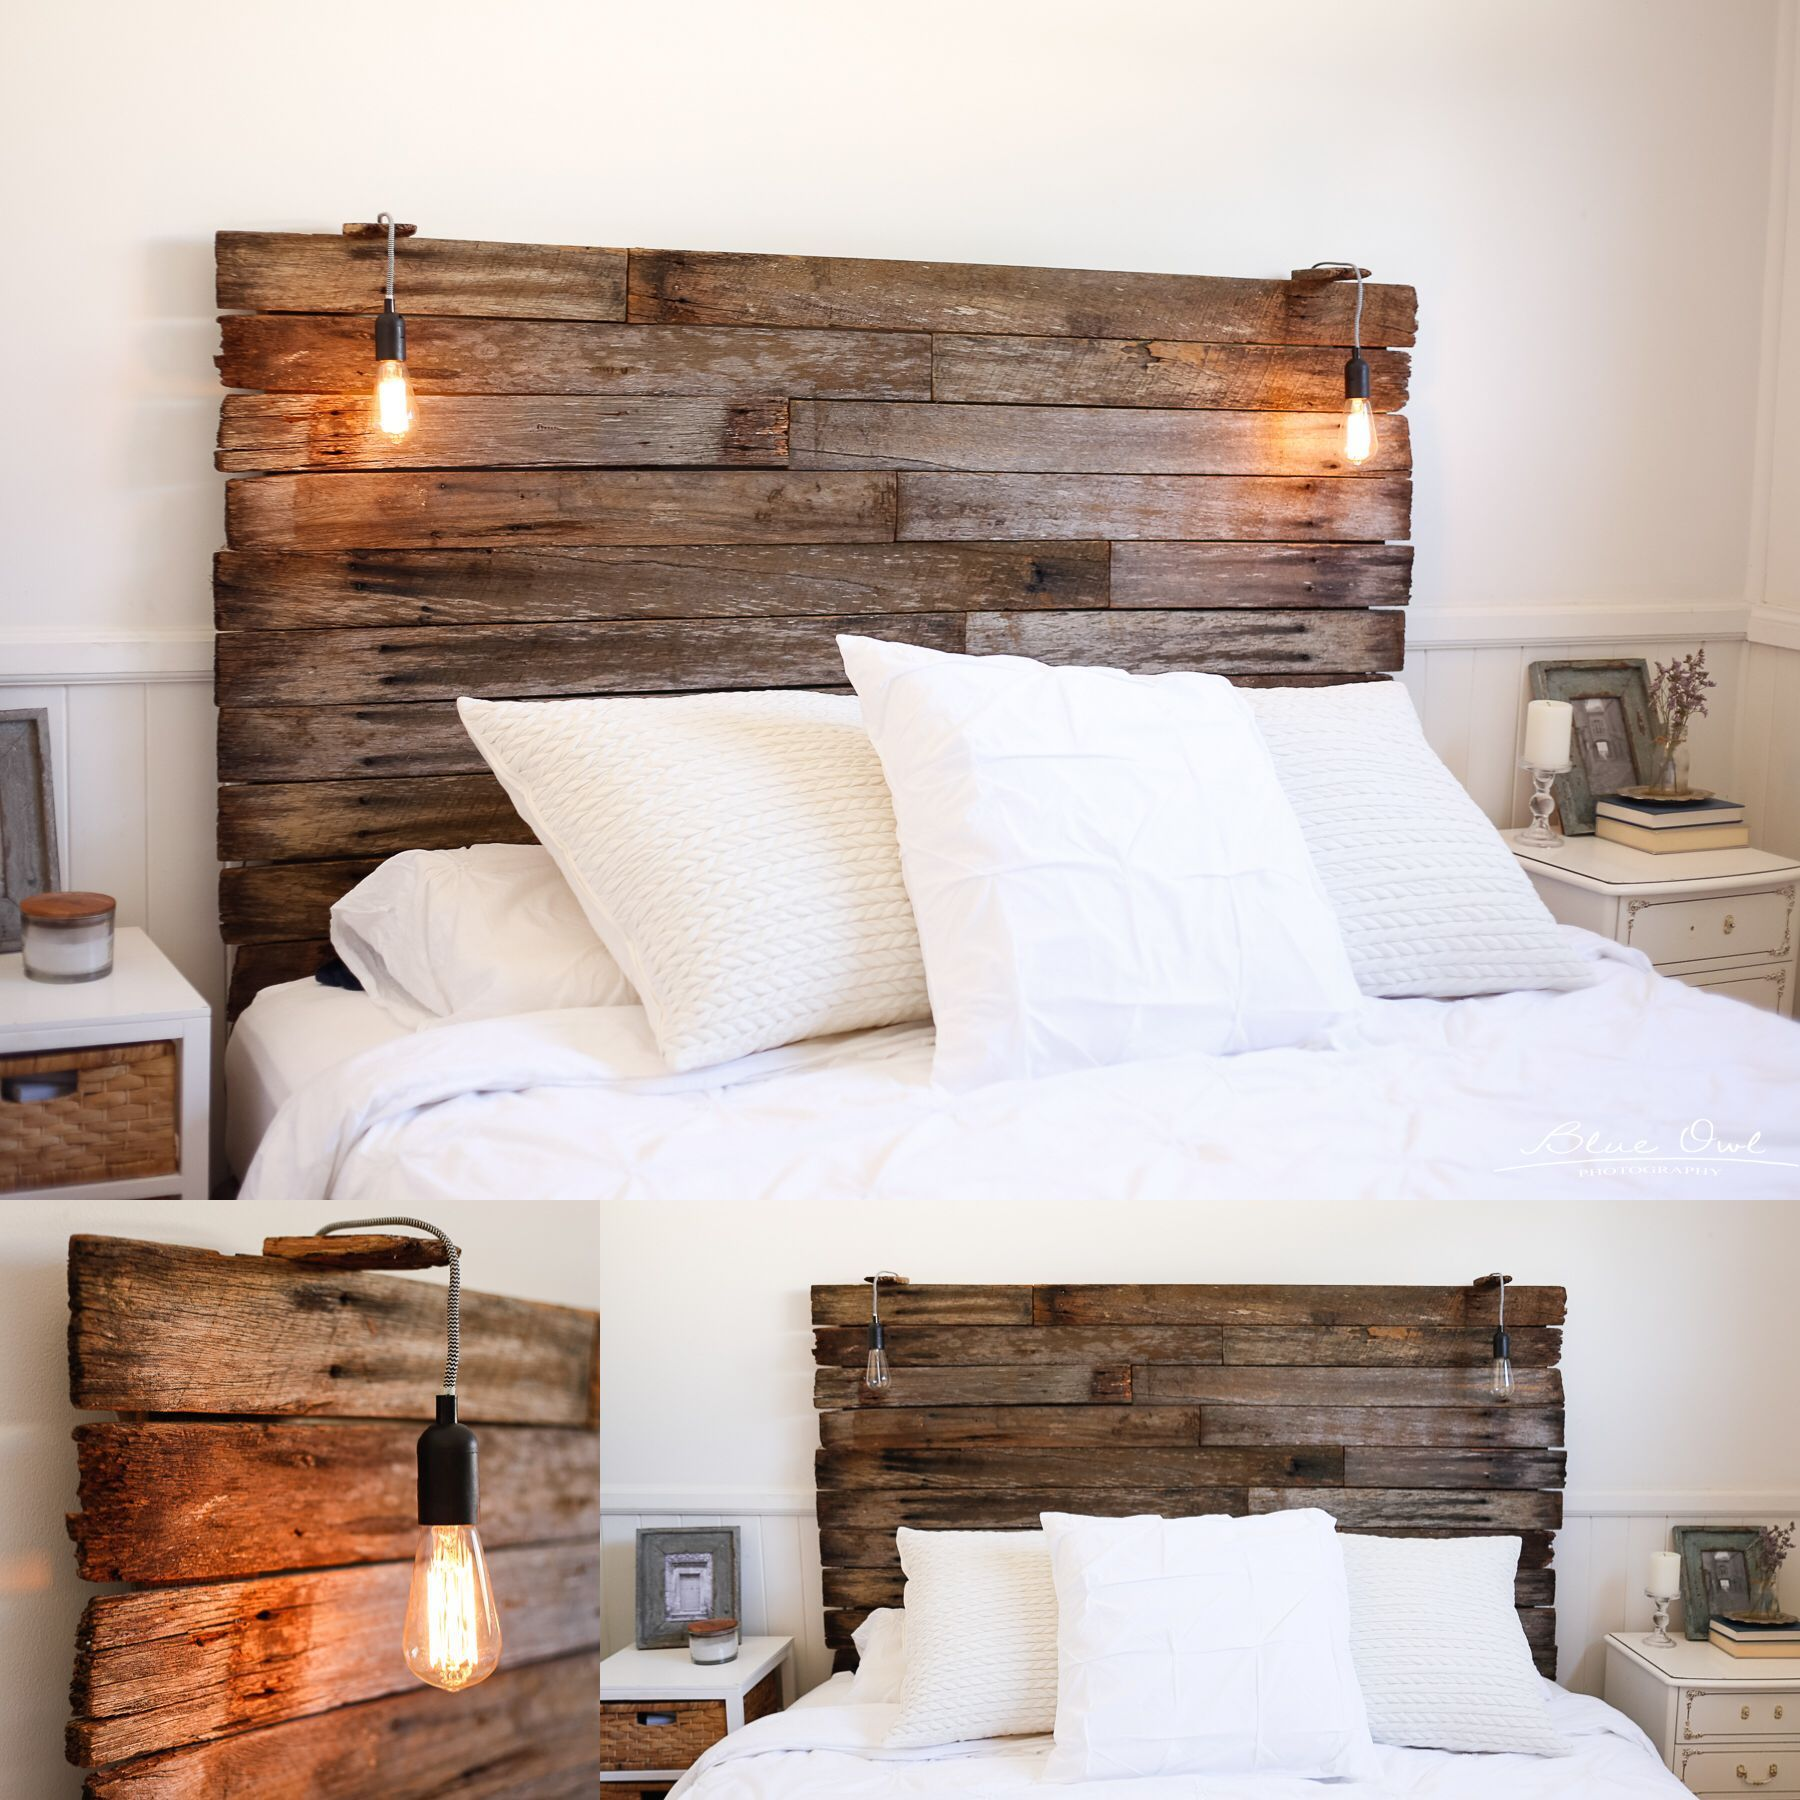 Pin on 88+Easy-to-build-DIY-Rustic-Wooden-Headboard